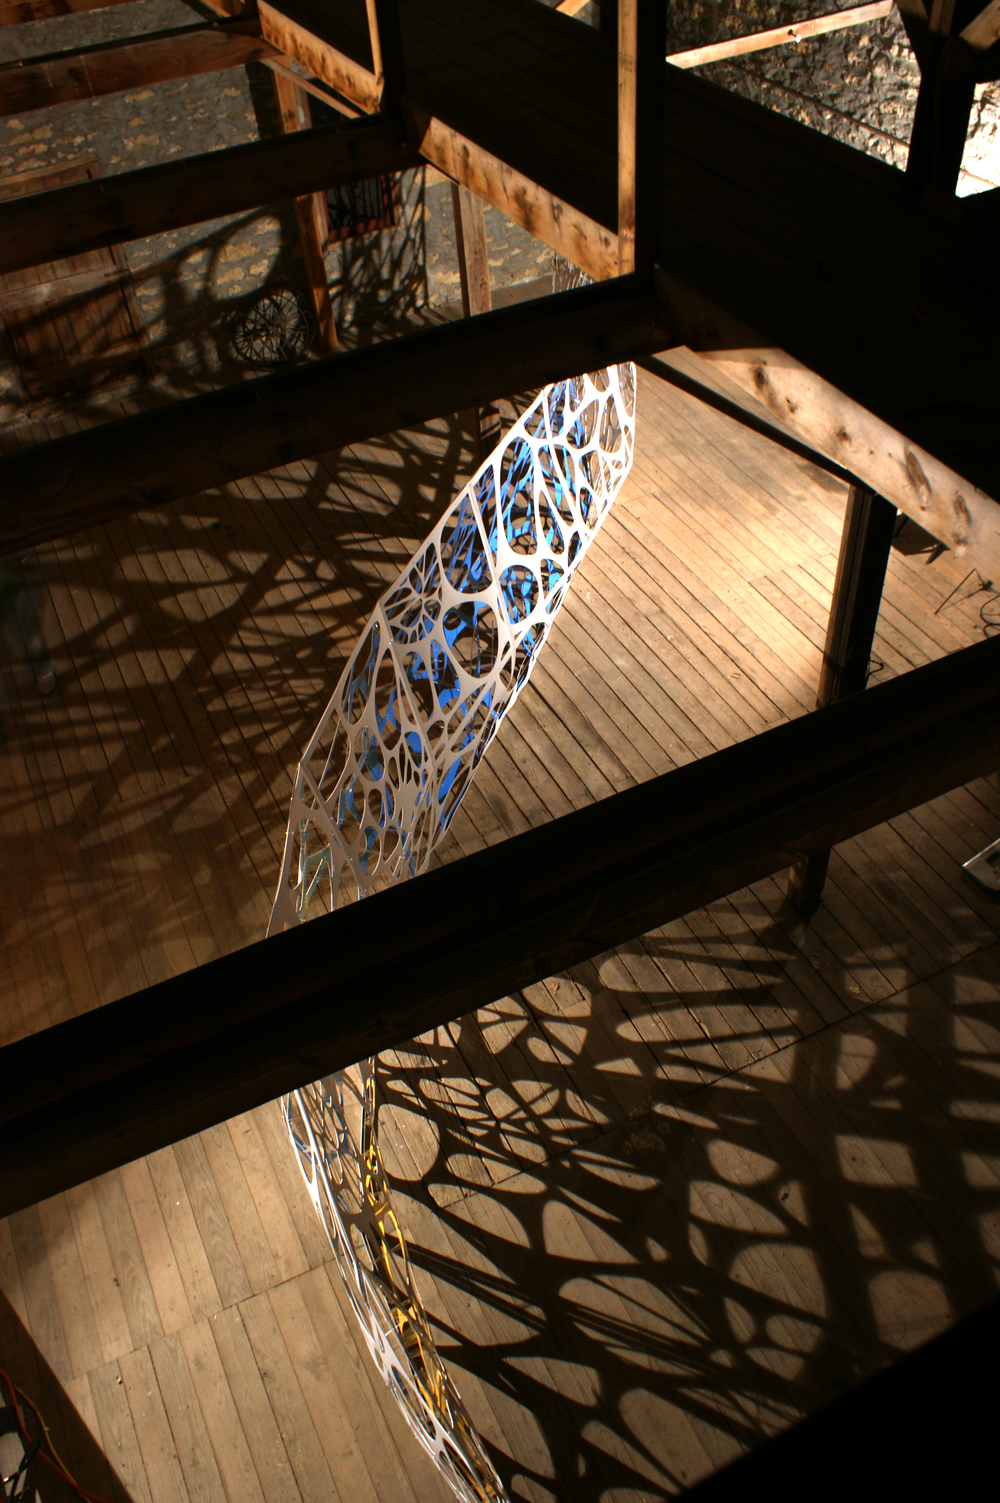 An Image of the piece from above